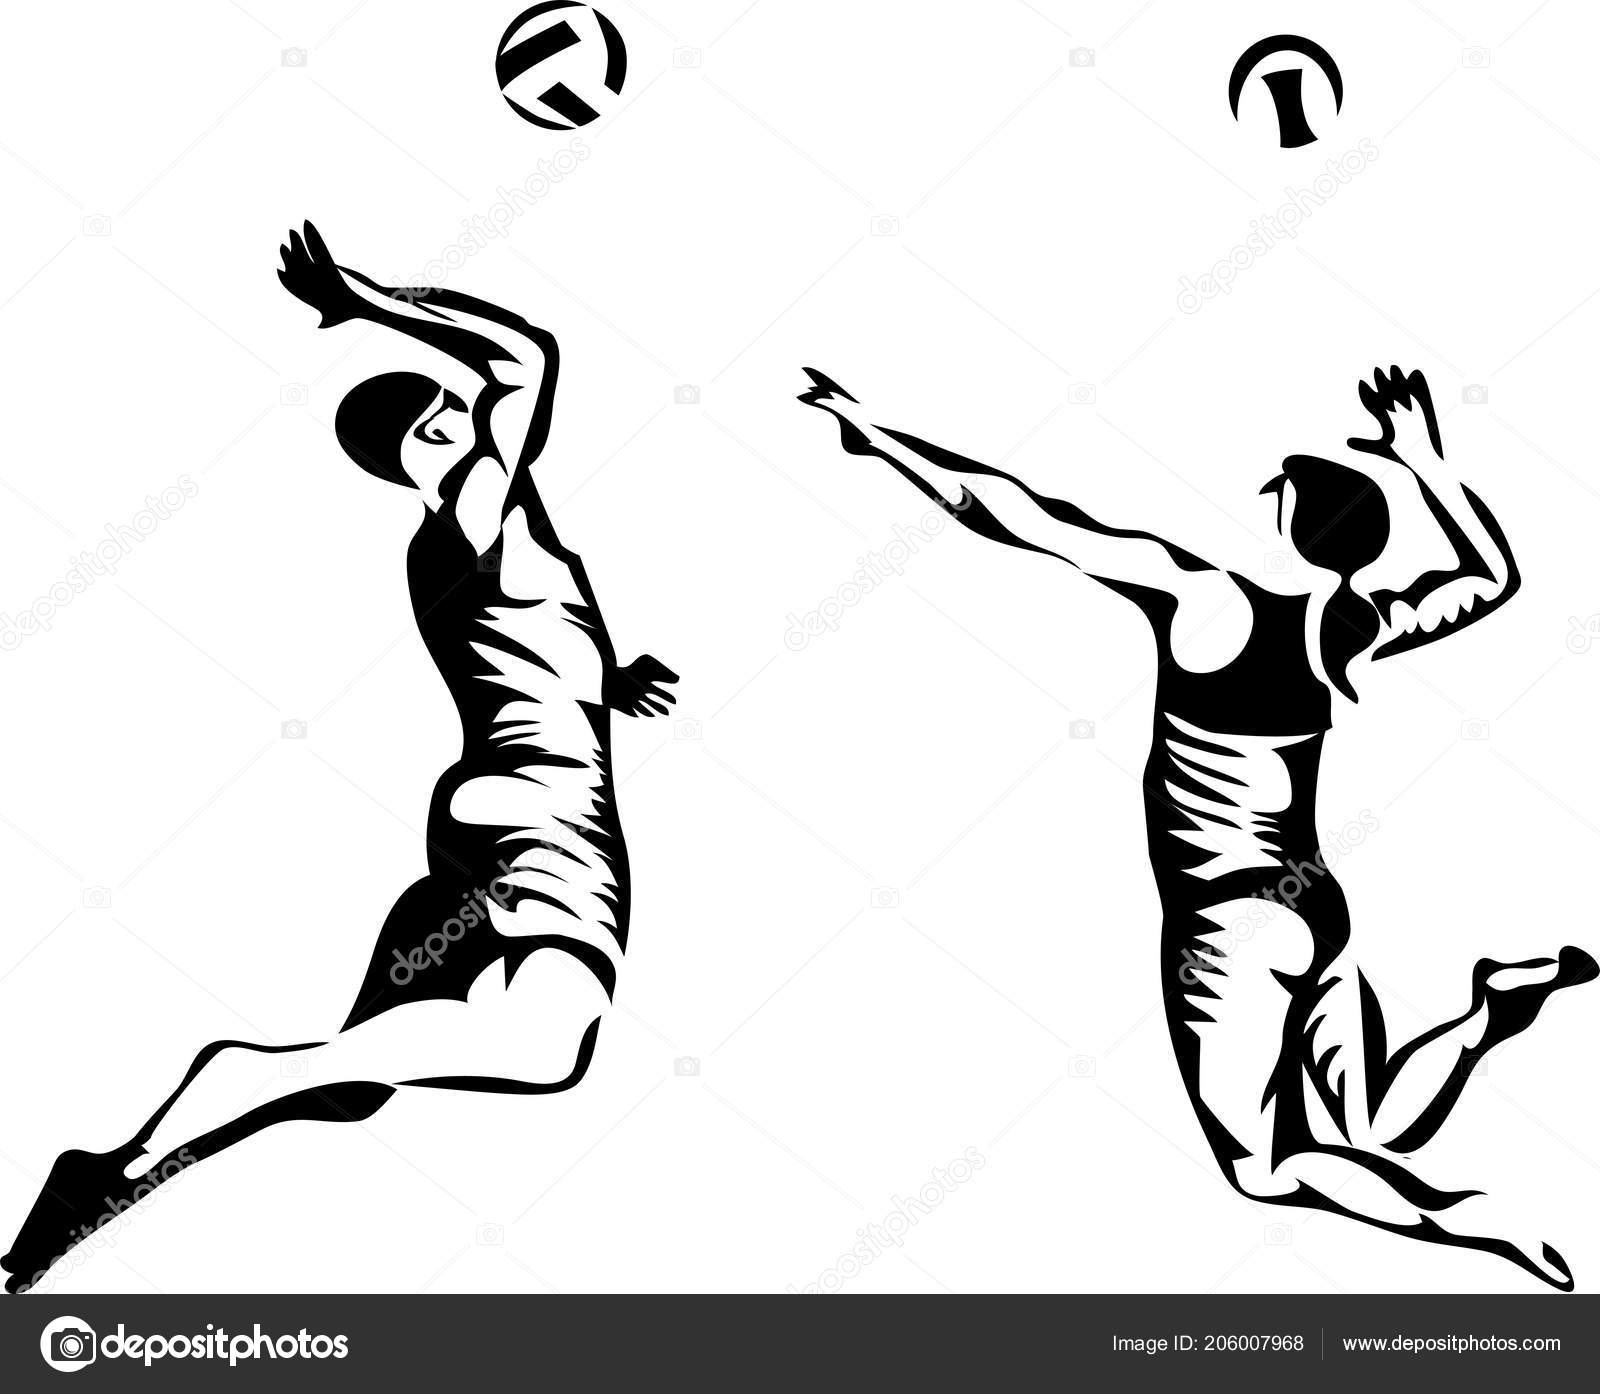 Imagenes De Volleyball